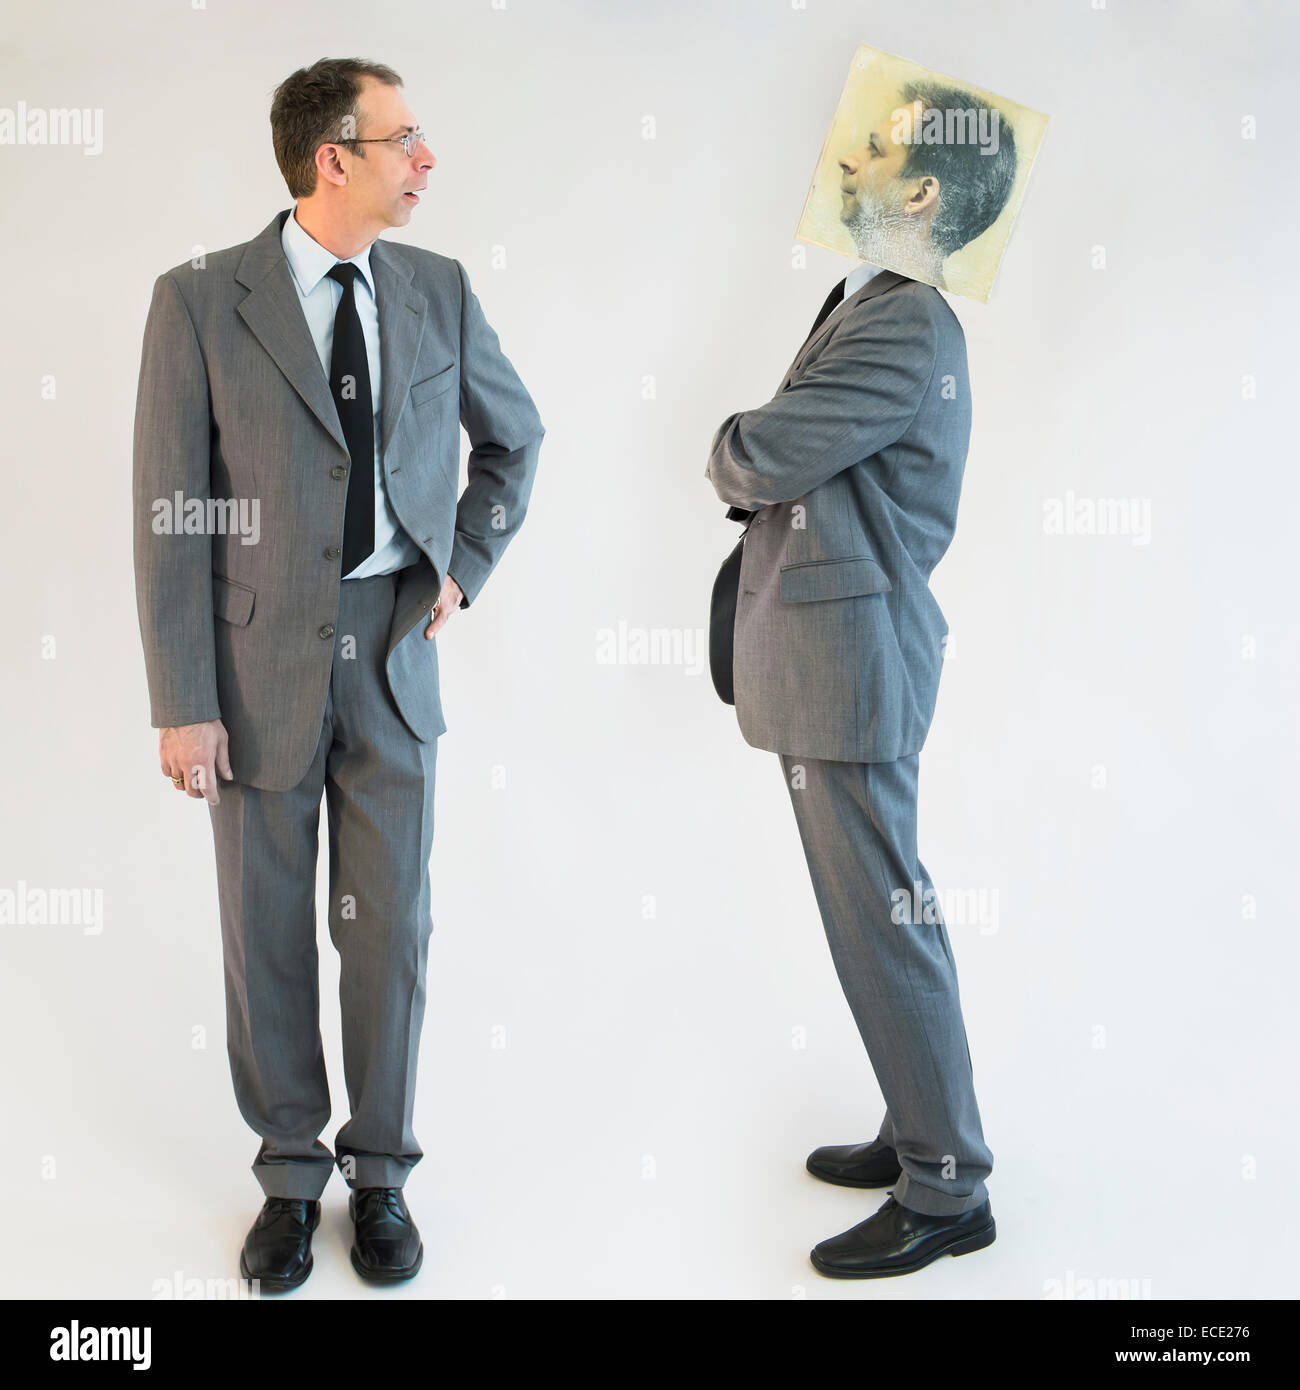 Businessman imagining self image of defiance - Stock Image